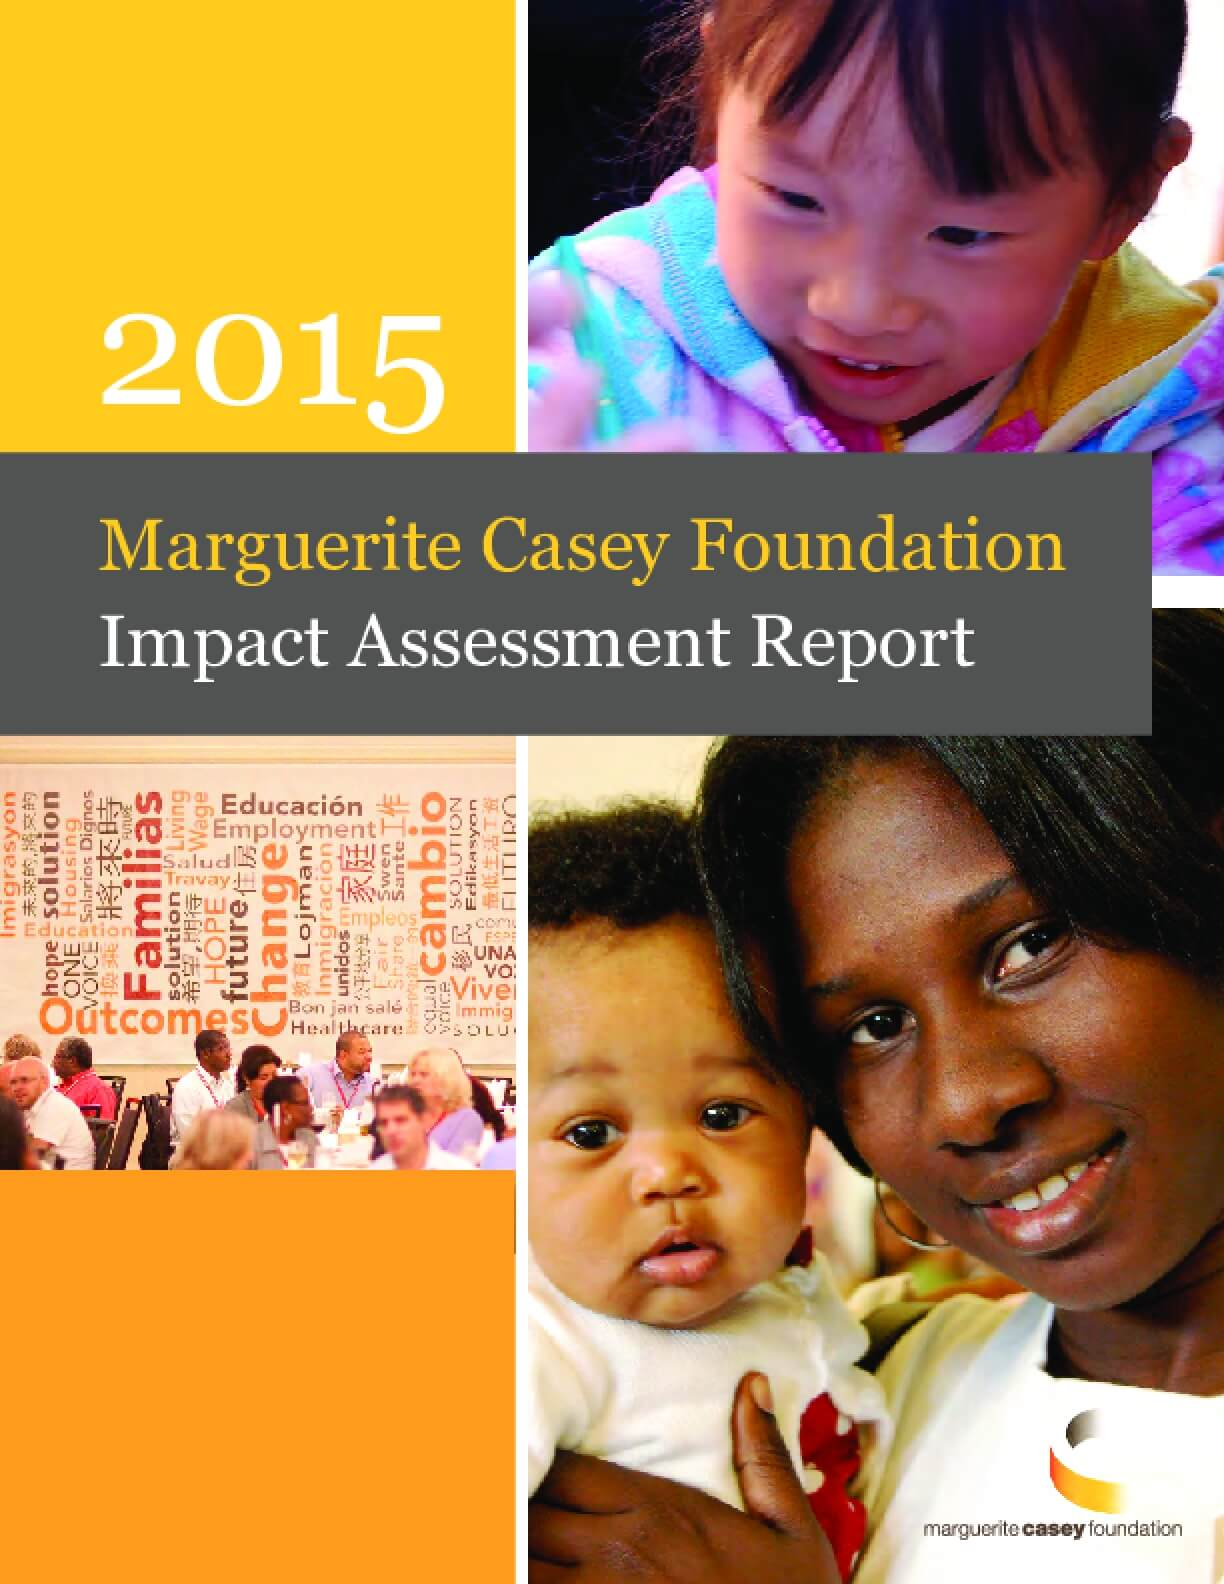 2015 Marguerite Casey Foundation Impact Assessment Report